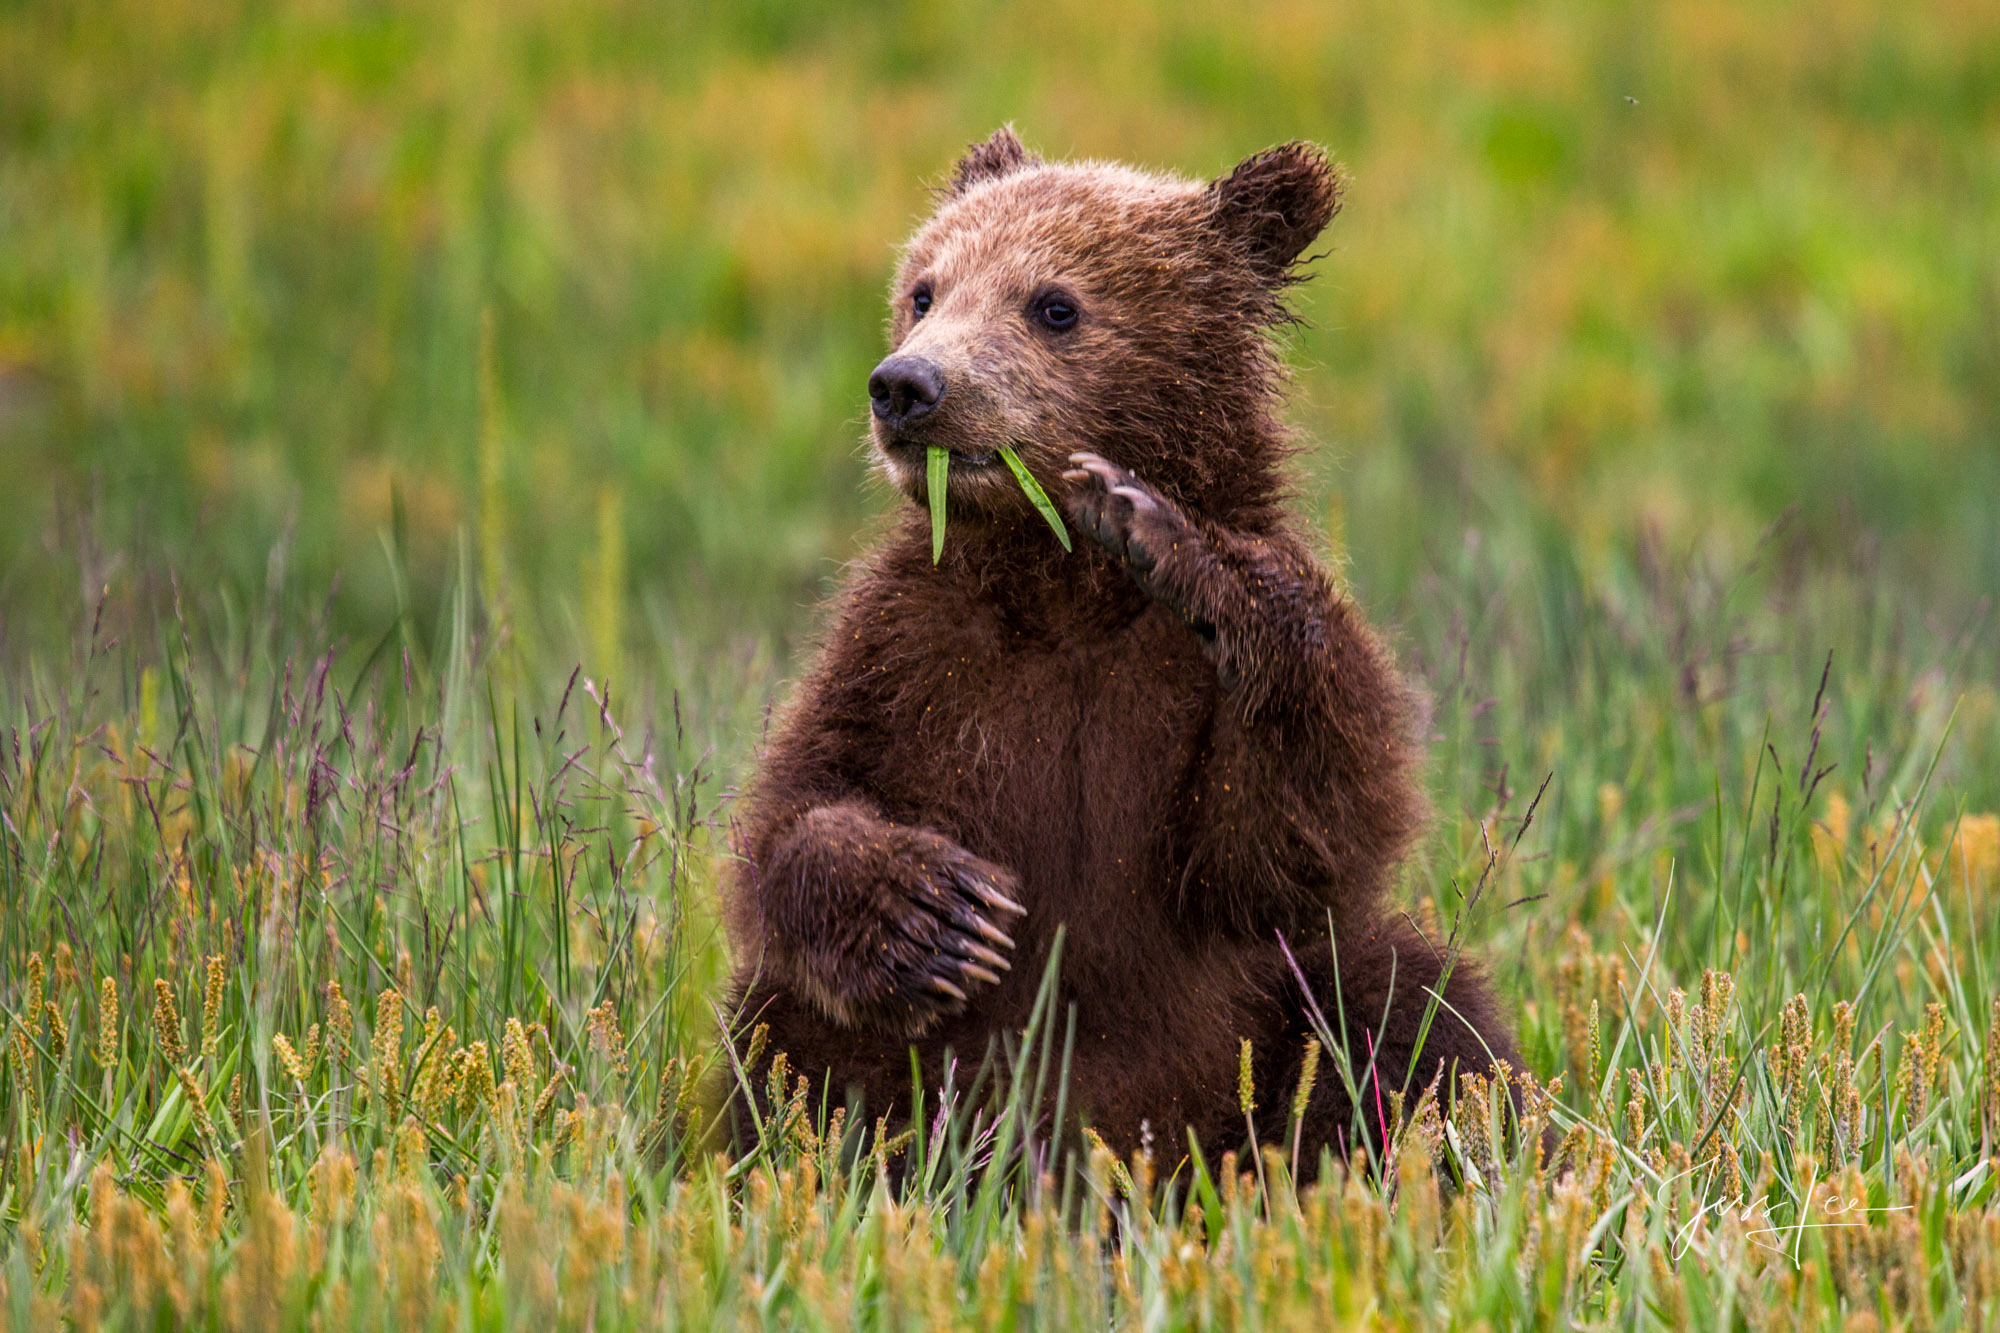 Grizzly cub setting up eating grass, a Limited edition of 800 prints. These Grizzly bear fine art wildlife photographs are offered...